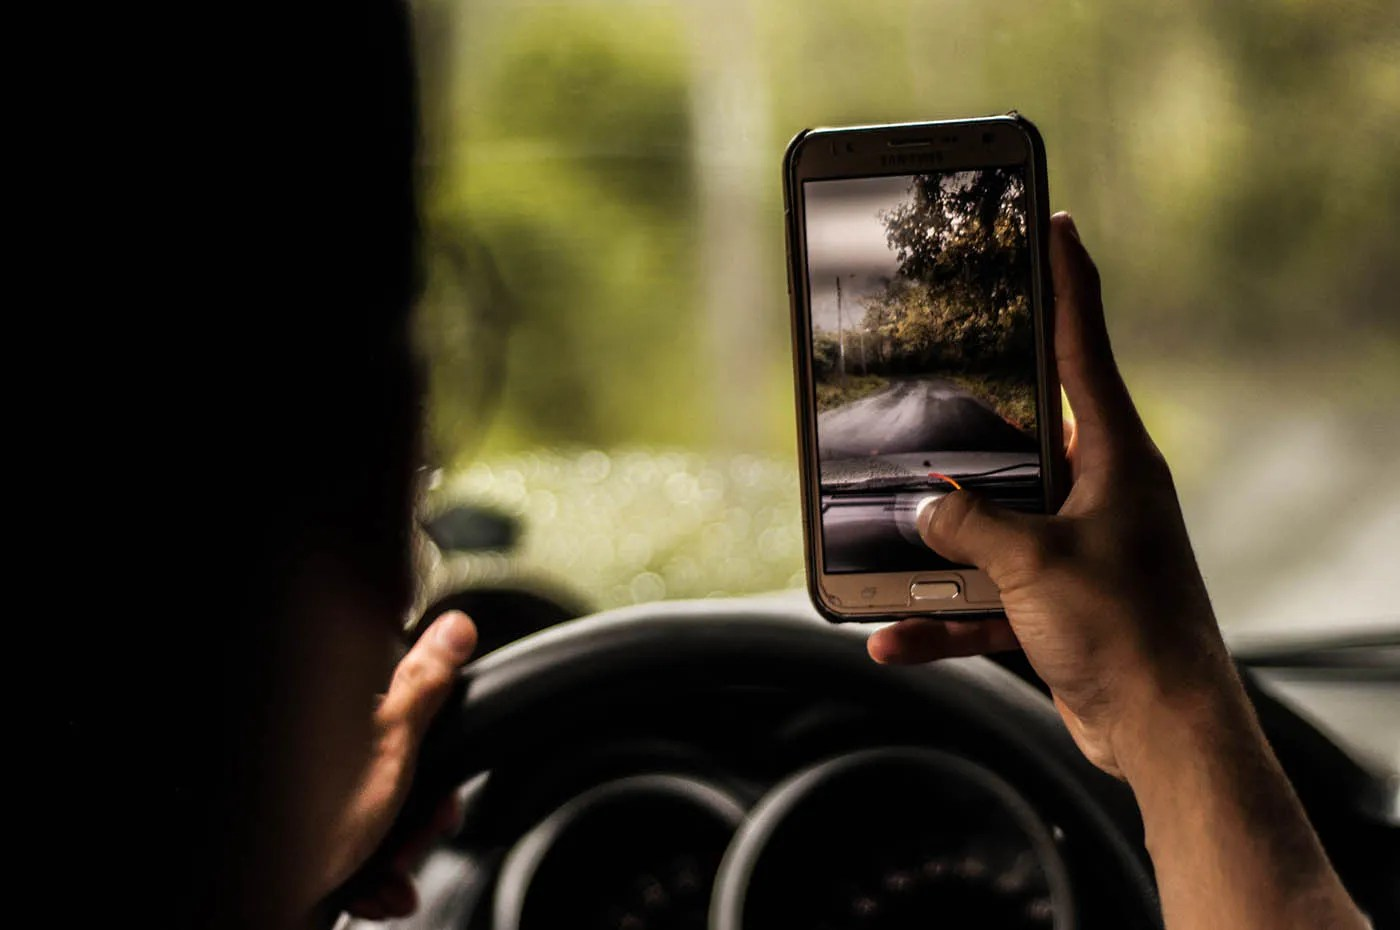 Road Trip Hashtags for Instagram & Twitter - List of the best road trip hashtags to use when sharing photos to social media sites like Instagram or Twitter. Get your photos found or browse pics.